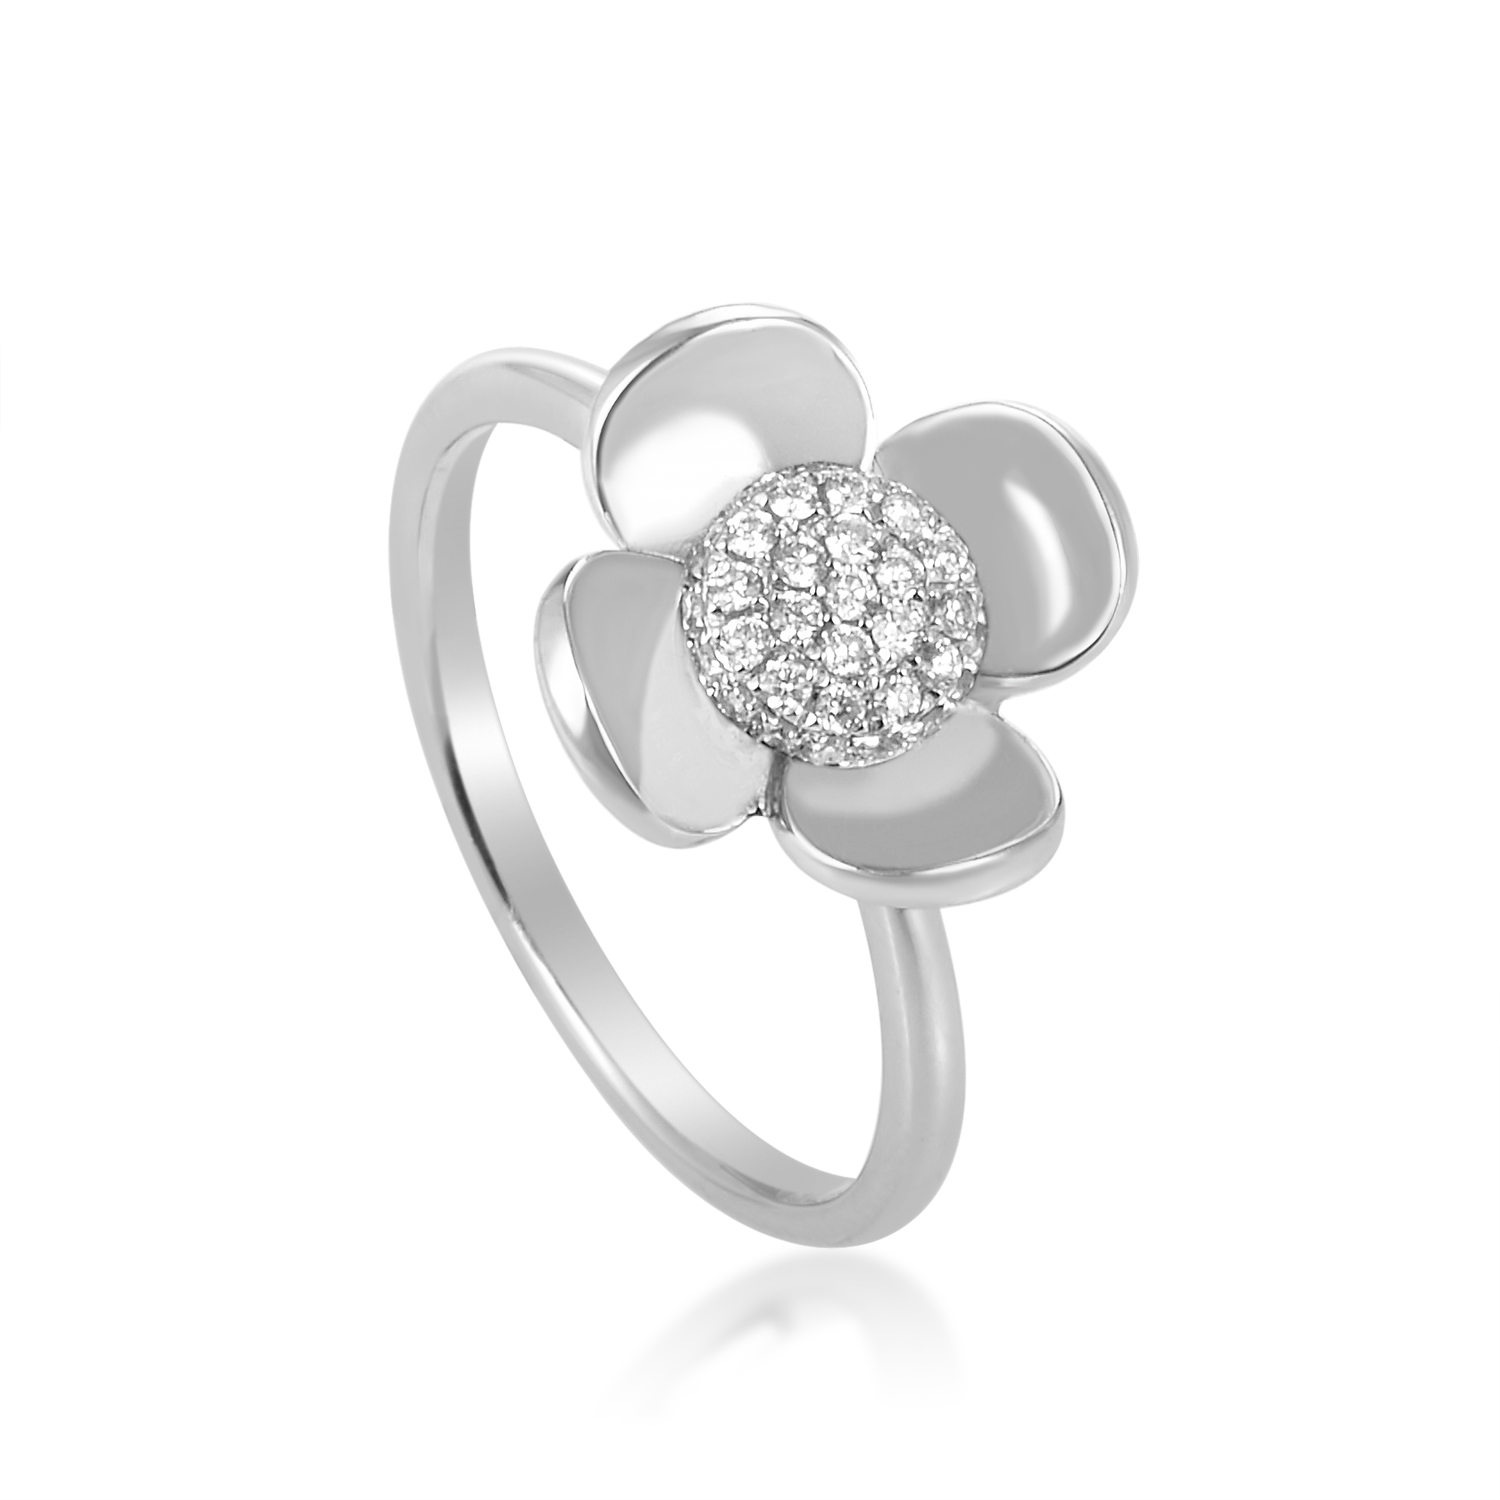 18K White Gold Flower Diamond Ring KO48261RMBZ